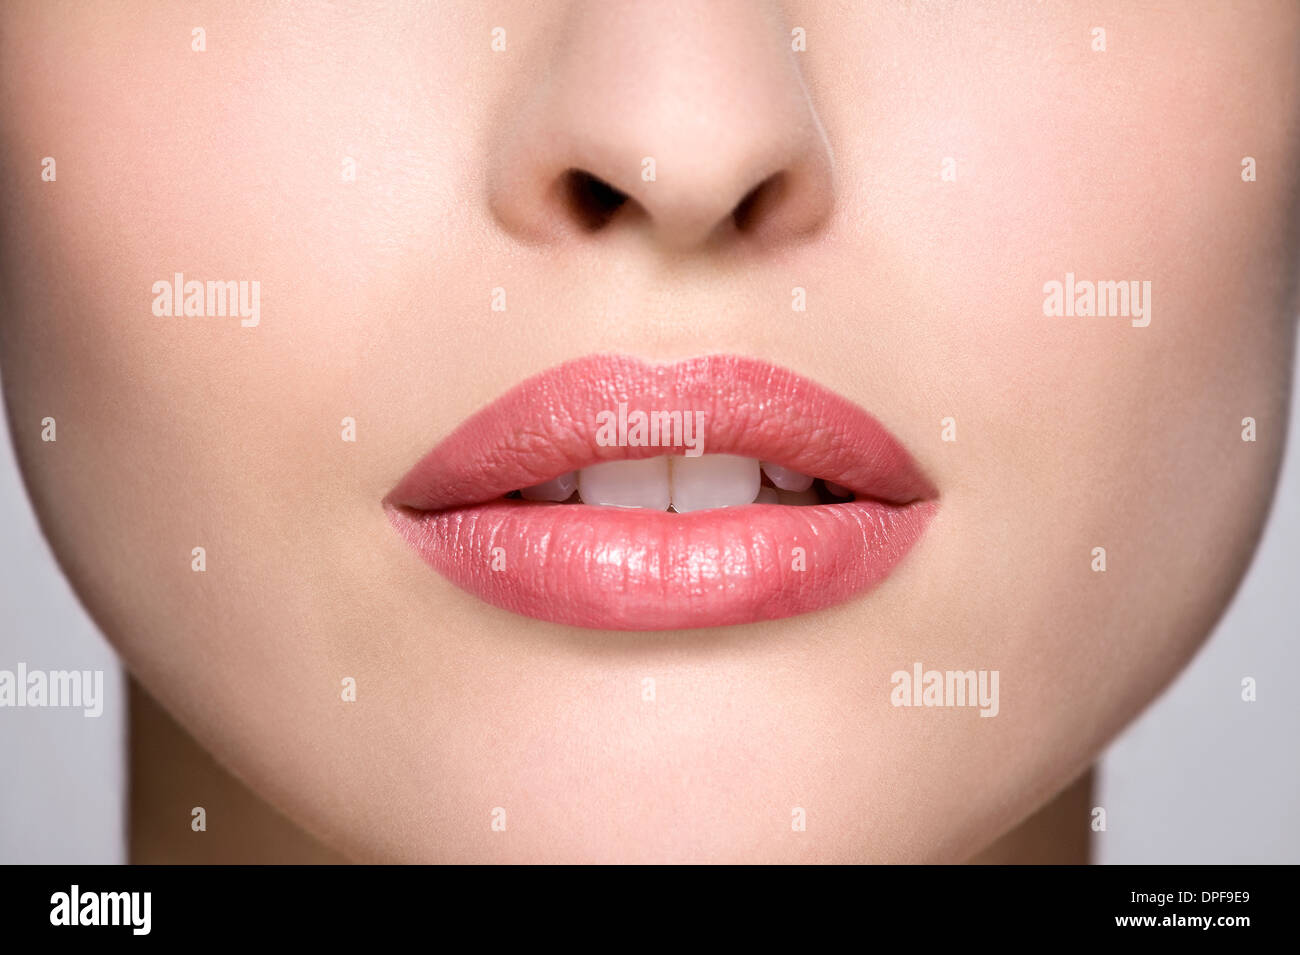 Portrait studio shot of young woman's mouth Photo Stock